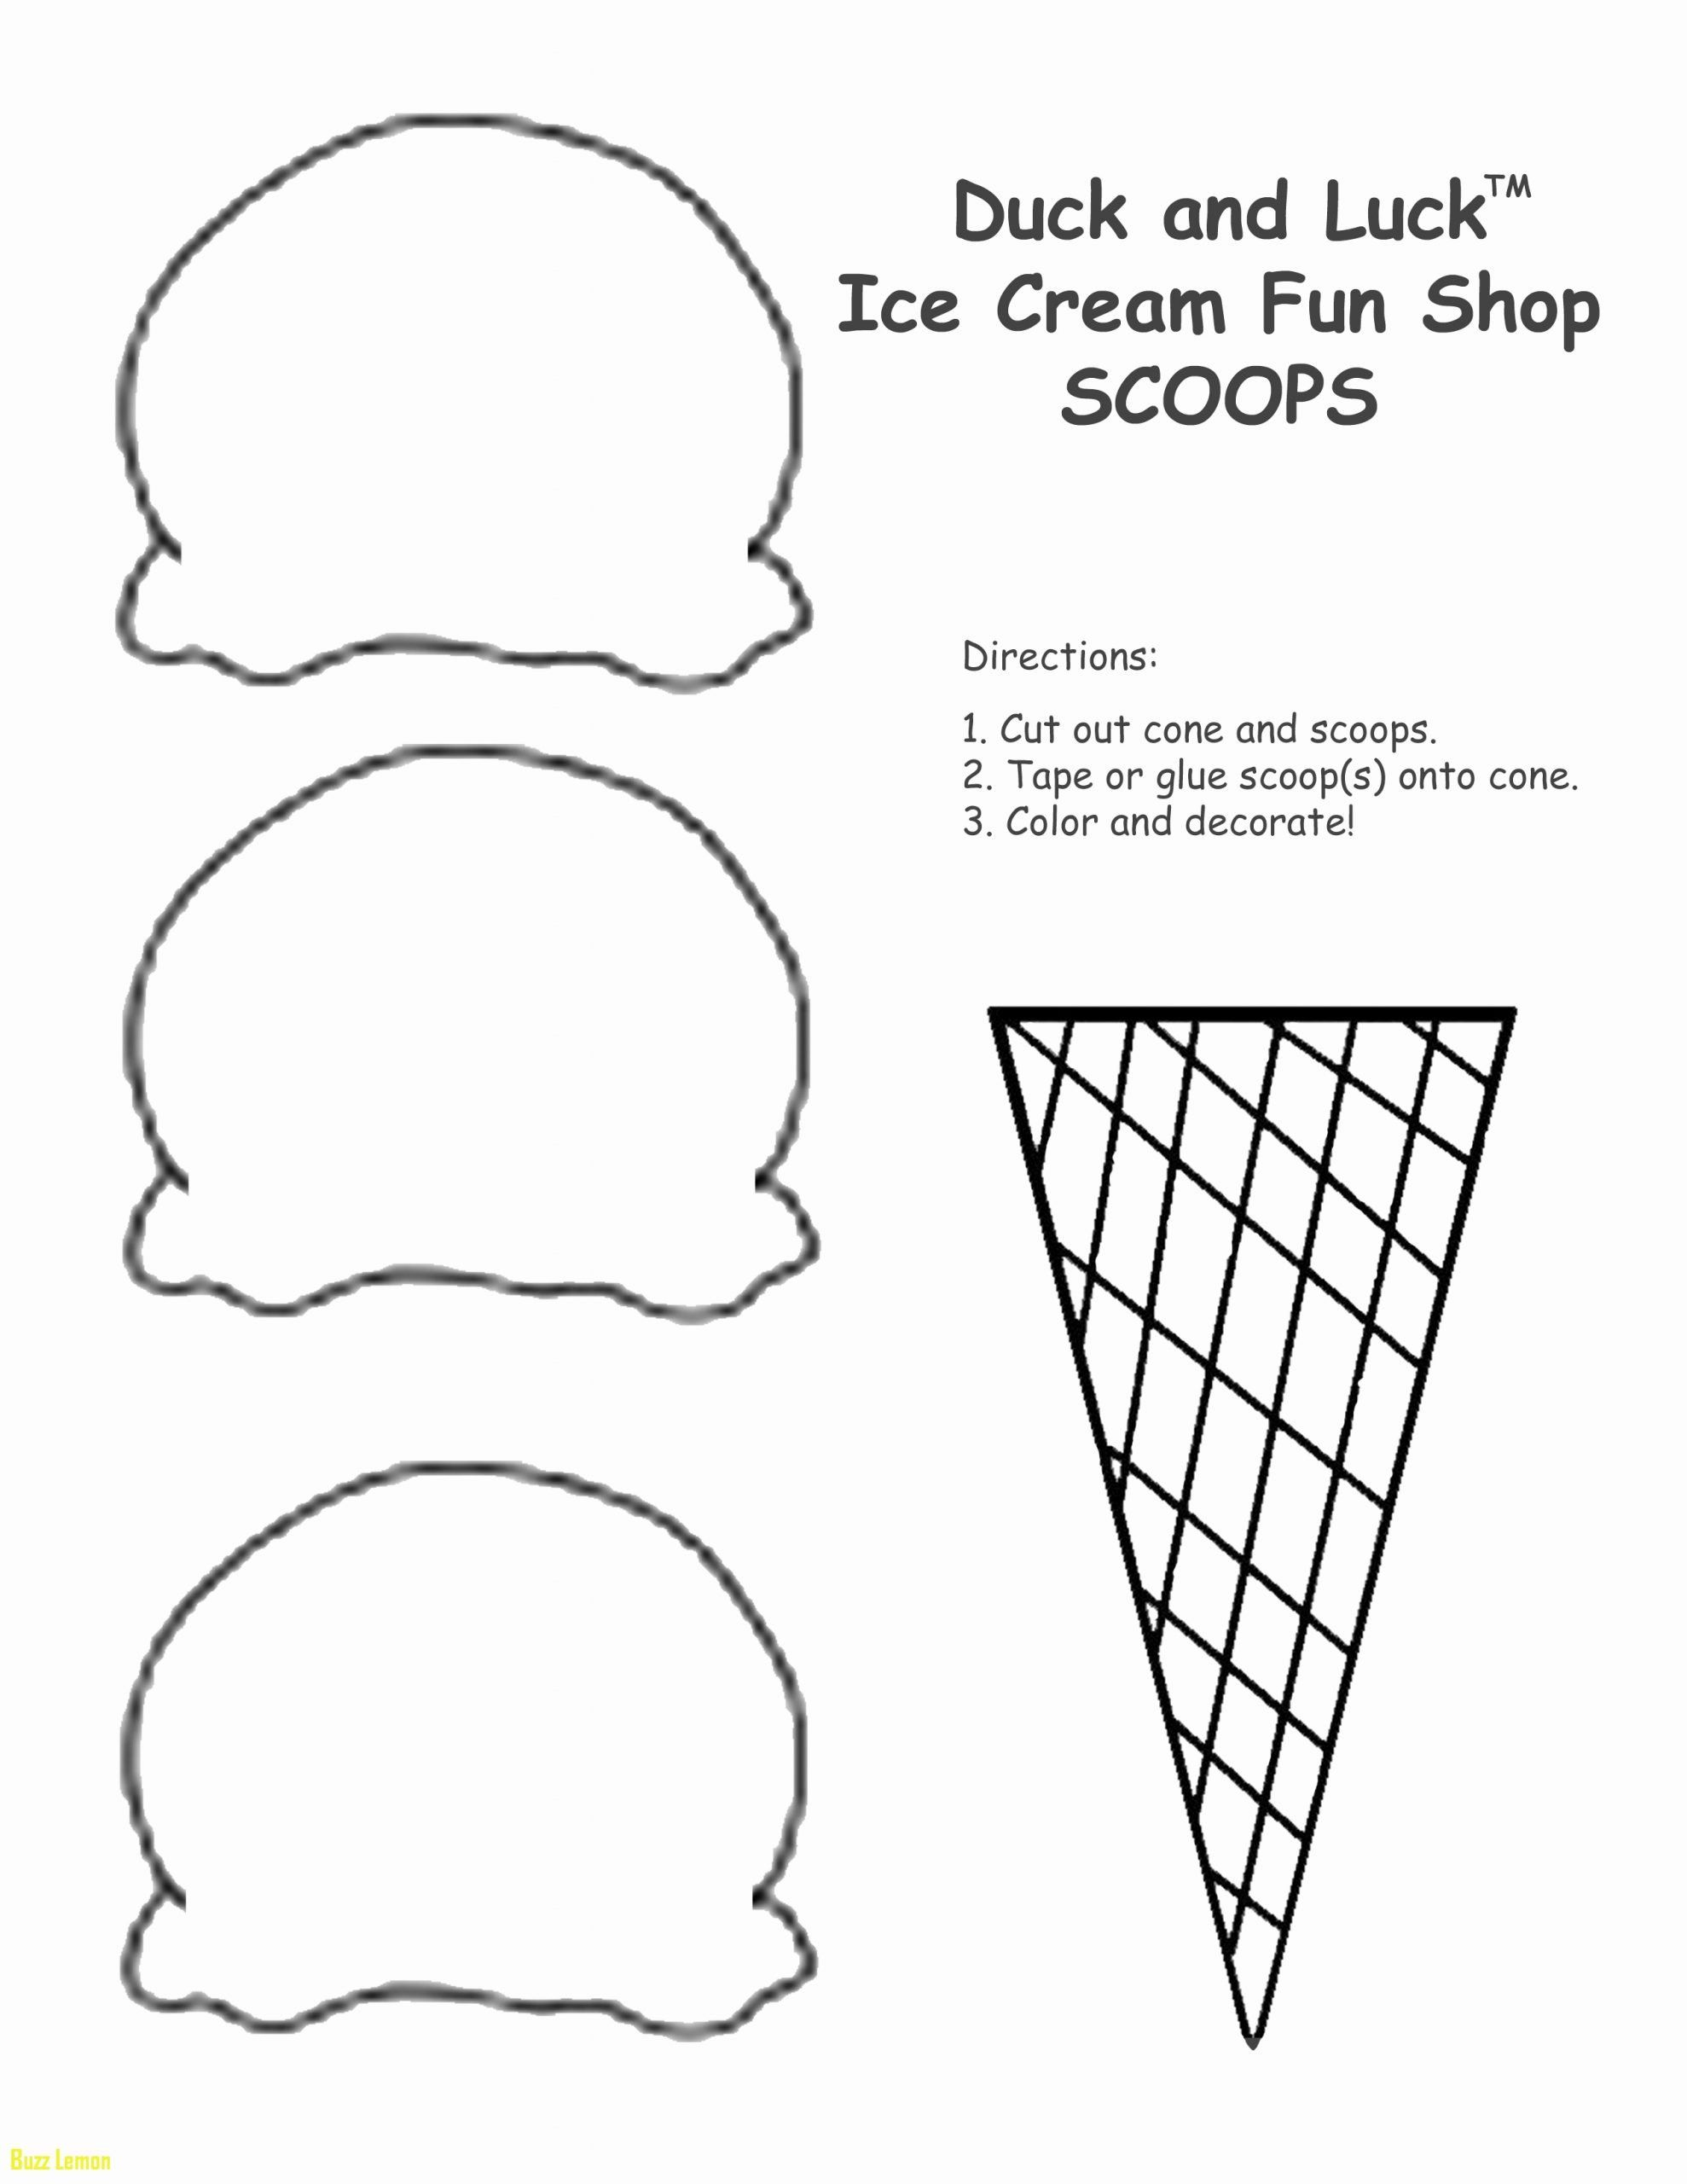 Icecream Cone Coloring Page Elegant Ice Cream Cone Coloring Pages To Print At Getdrawings In 2020 Ice Cream Coloring Pages Ice Cream Printables Cone Template